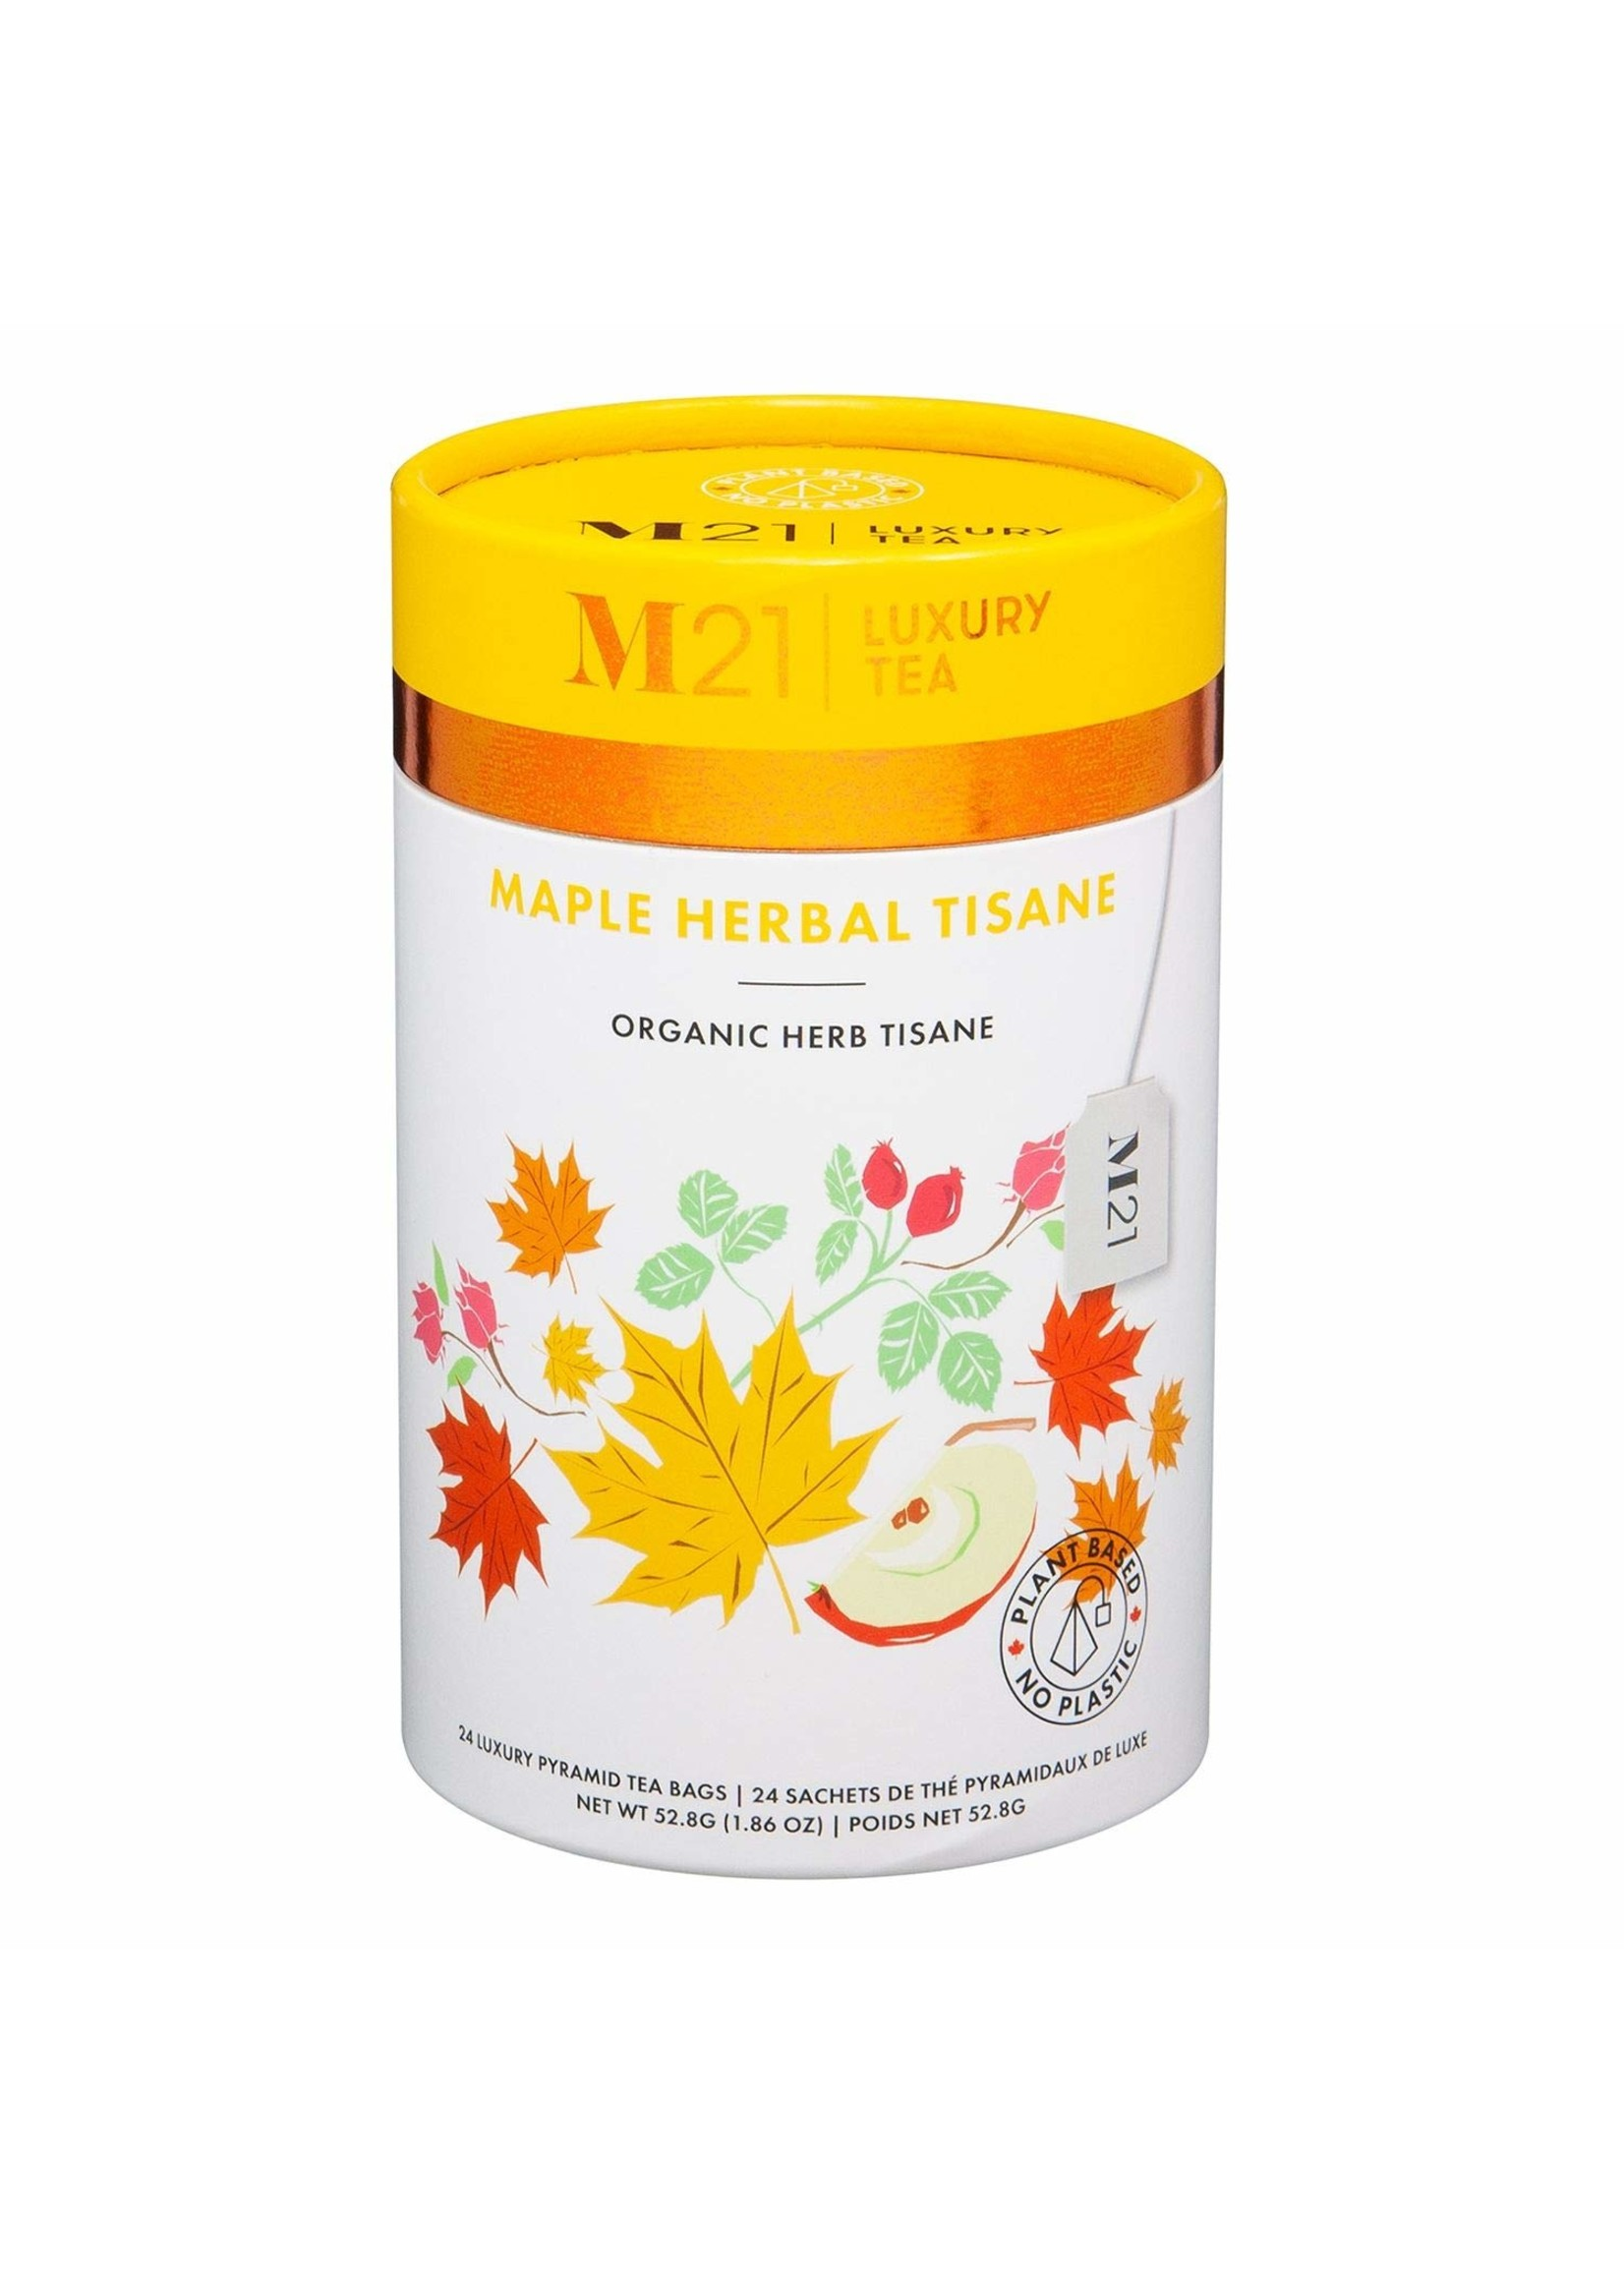 Metropolitan Tea M21 Luxury Tea- Maple Herbal Tisane Organic